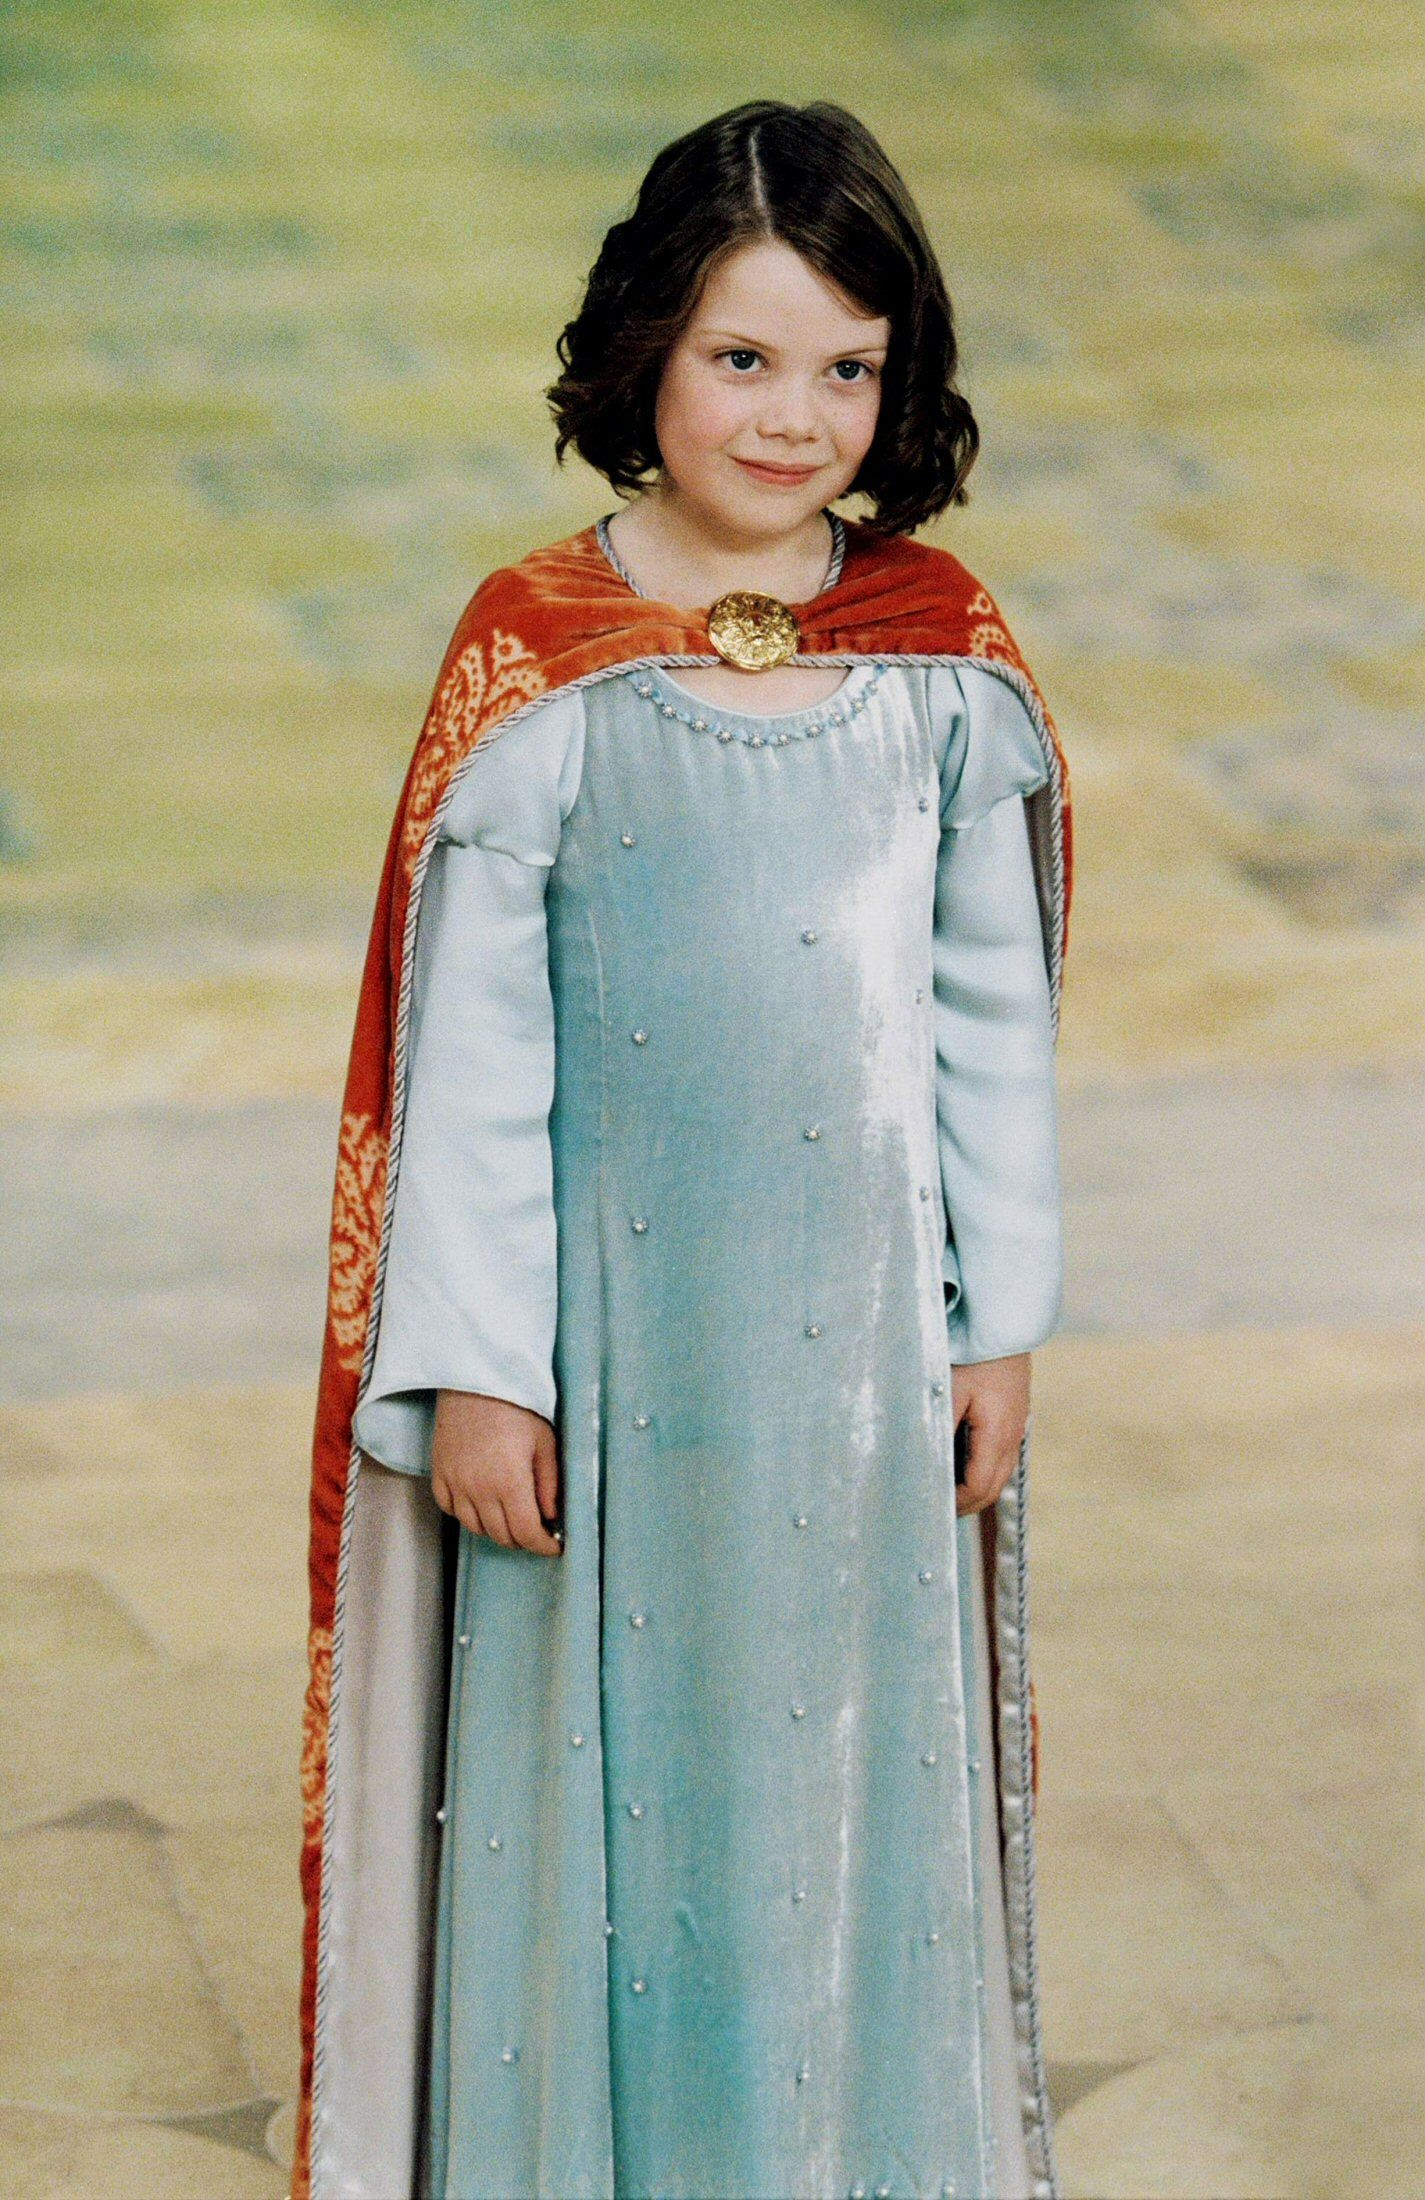 8706c8451875 I love this dress. Making a doll-sized remake of it was one of my favorite  sewing projects yet. :) Lucy's Coronation Gown and Cape, #Narnia